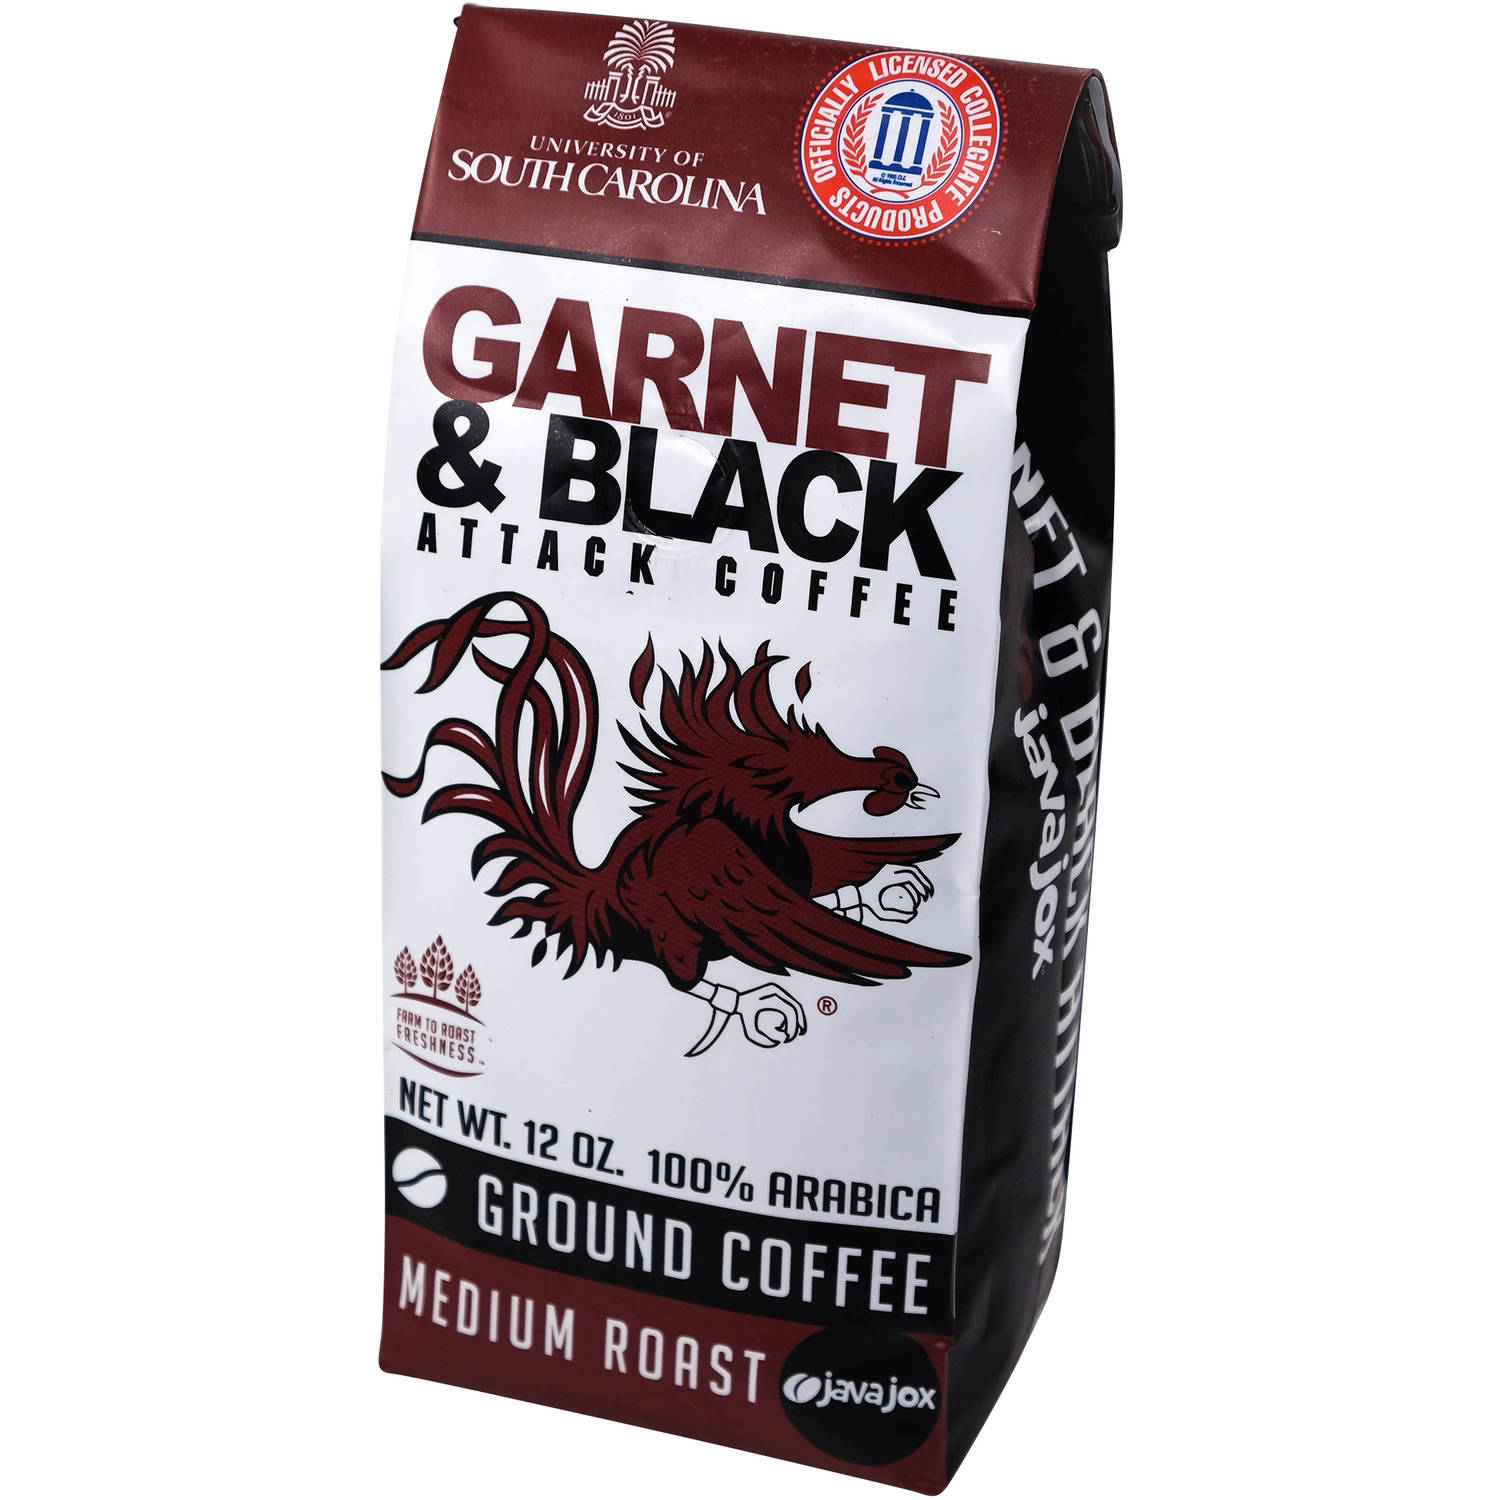 Java Jox University of South Carolina Garnet & Black Attack Ground Coffee, 12 oz